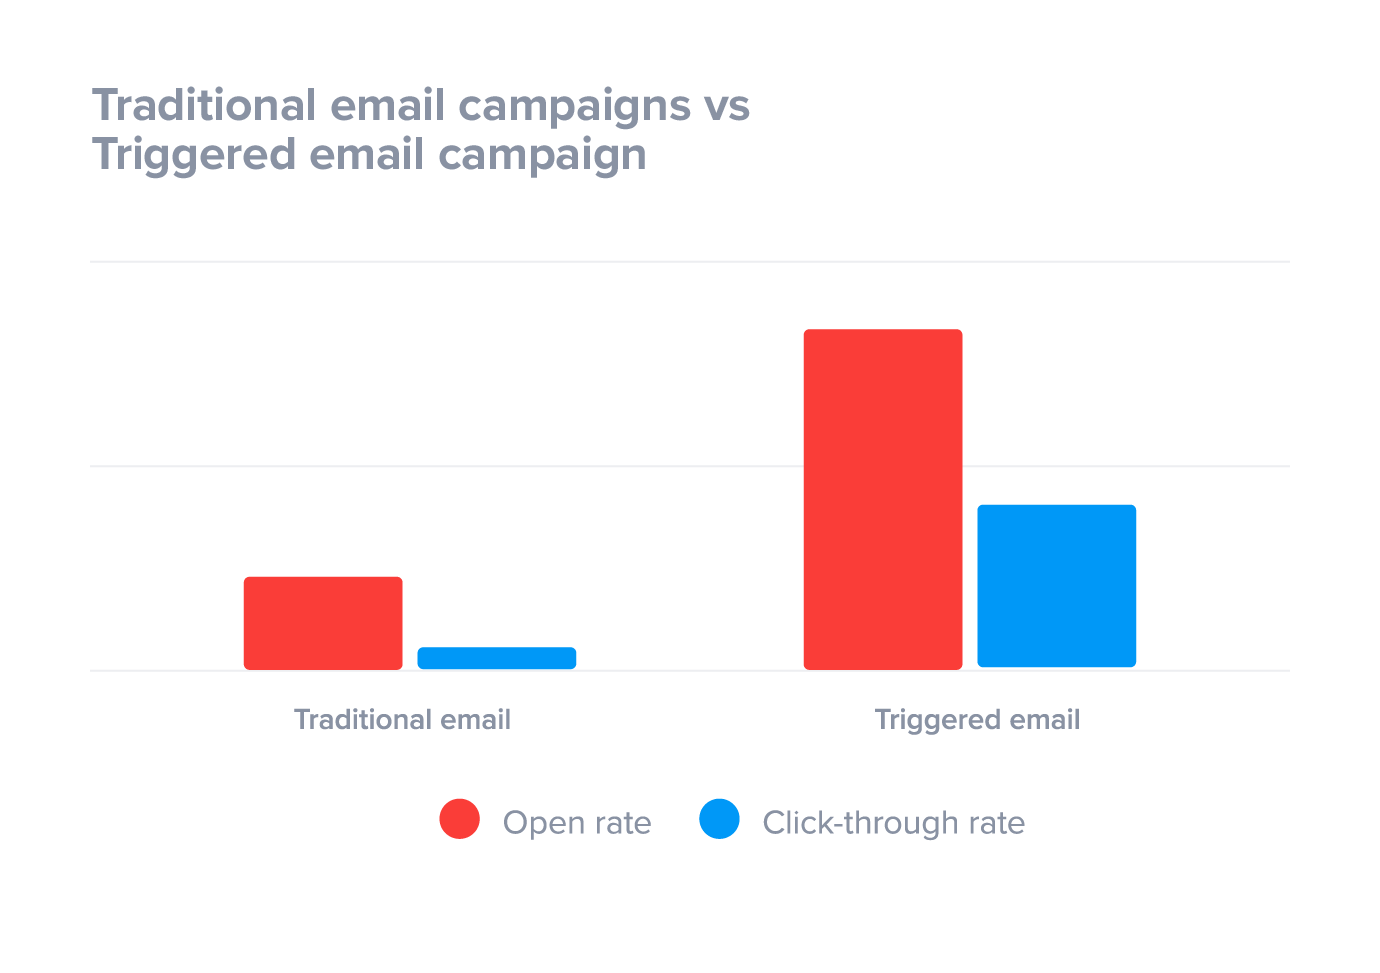 Triggered email campaigns outperform traditional email campaigns